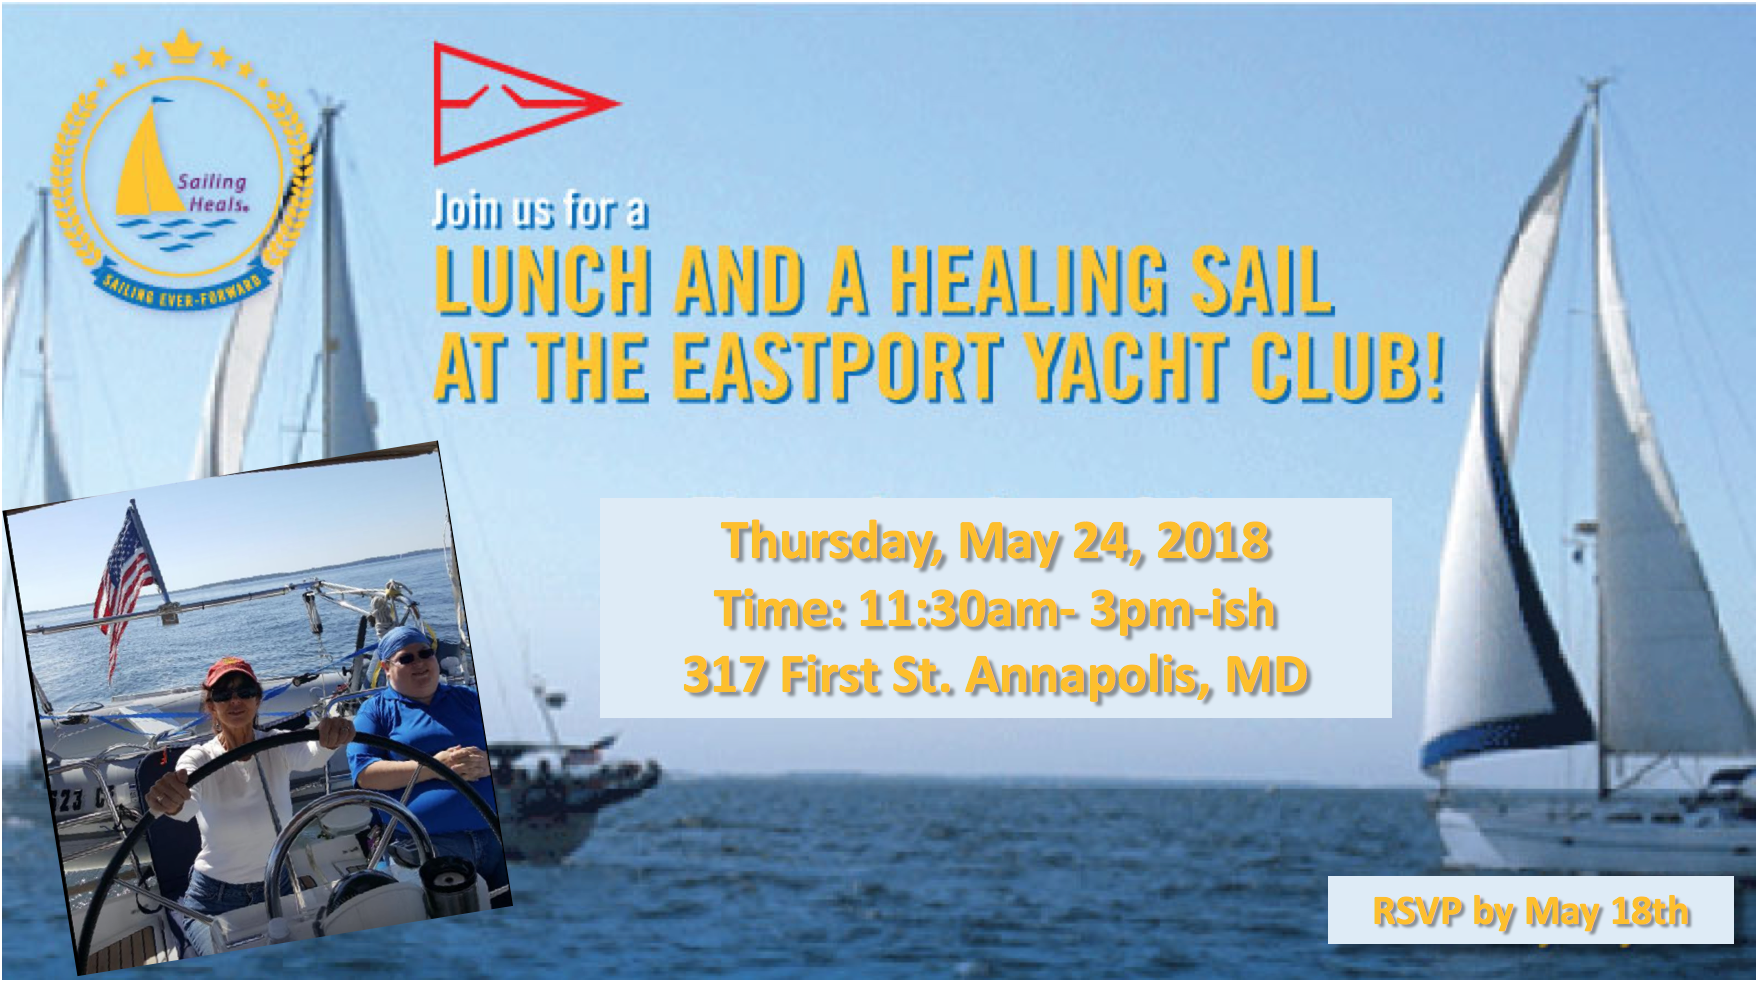 5/24/18 Healing Sail and Lunch in Annapolis, MD